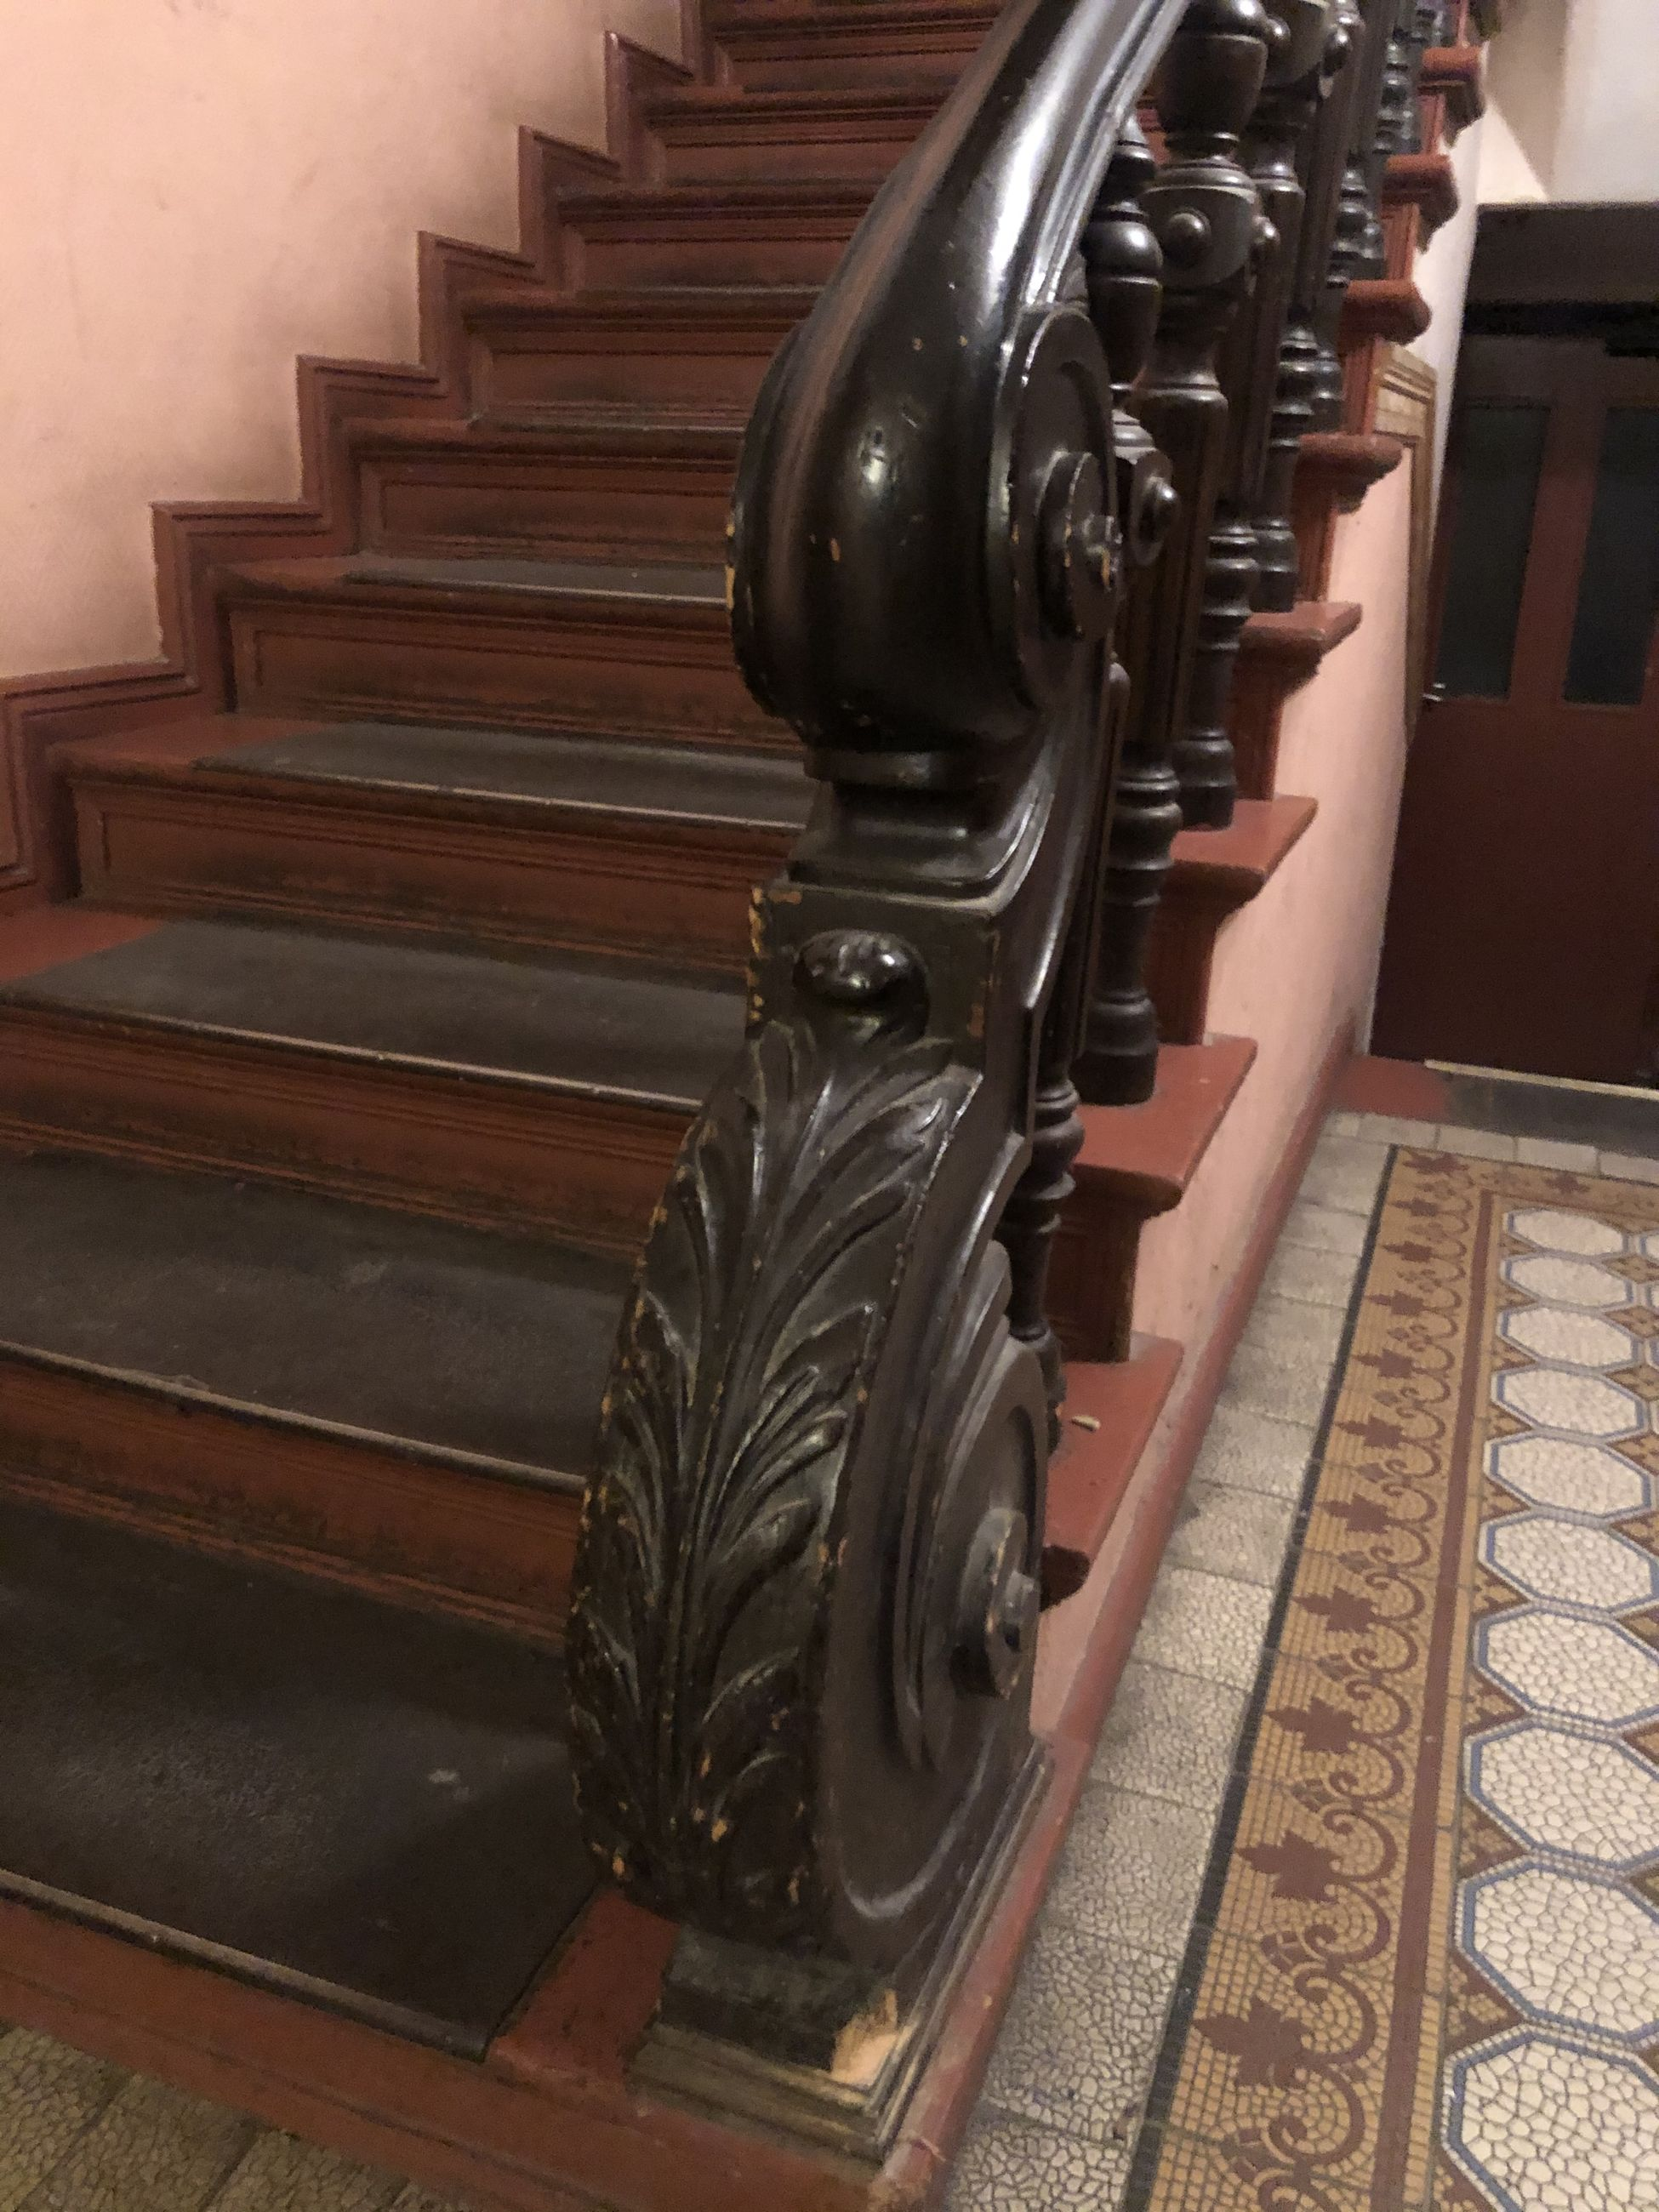 staircase, indoors, steps and staircases, architecture, no people, in a row, built structure, railing, pattern, machinery, absence, repetition, carpet - decor, flooring, metal, technology, musical equipment, piano, arts culture and entertainment